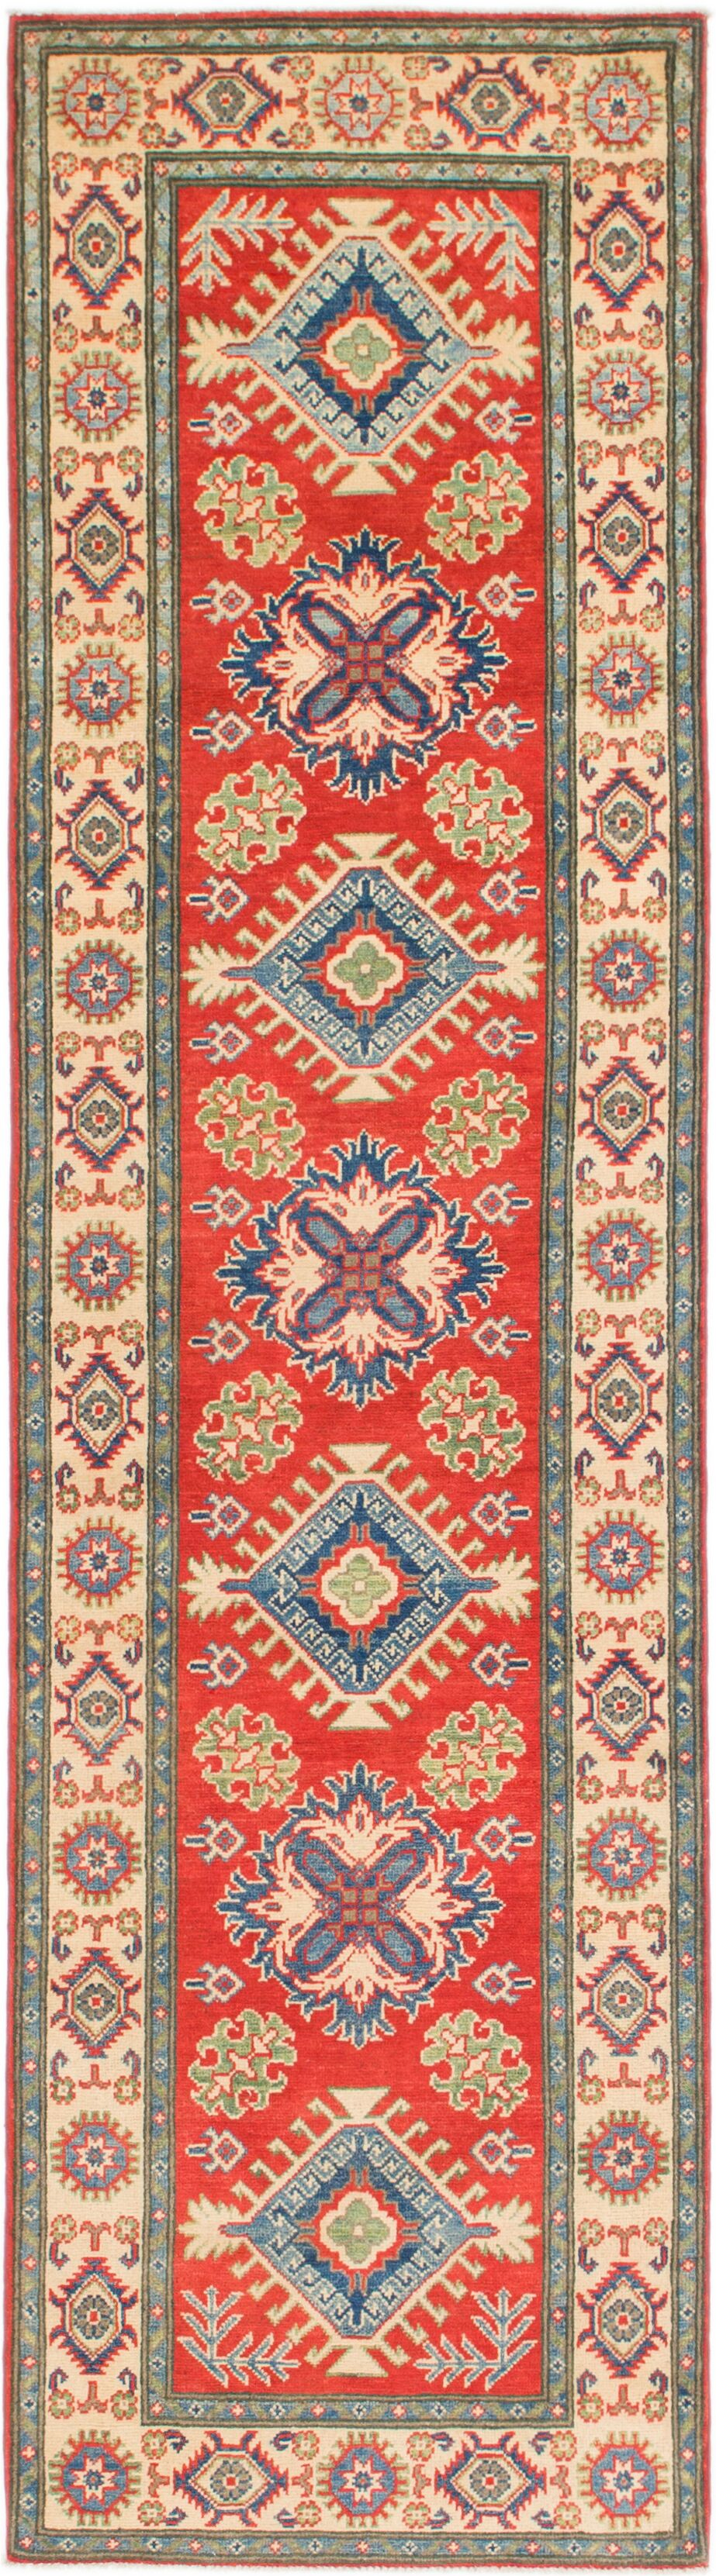 One-of-a-Kind Alayna Hand-Knotted Wool Red Area Rug